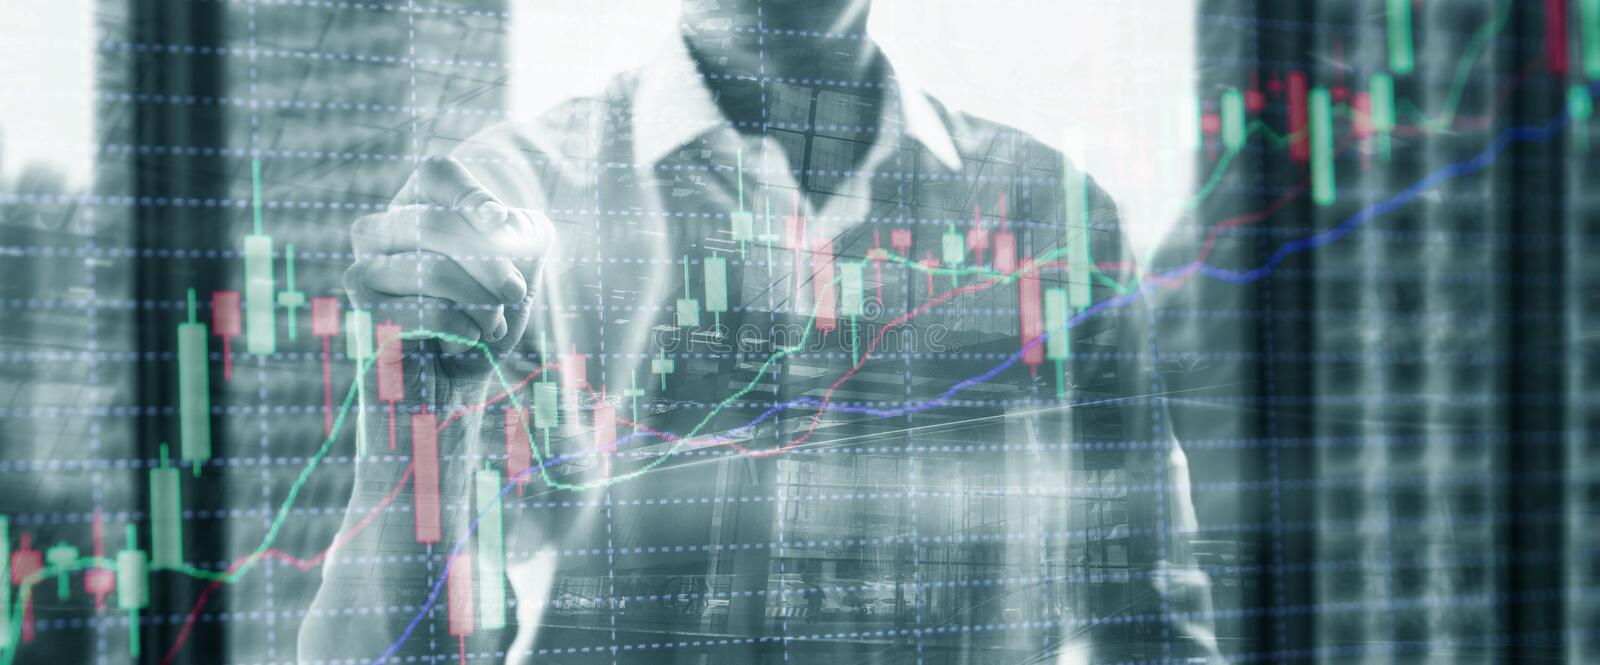 Double exposure of professional trader. Stock candles graph of stocks market.  royalty free stock photo